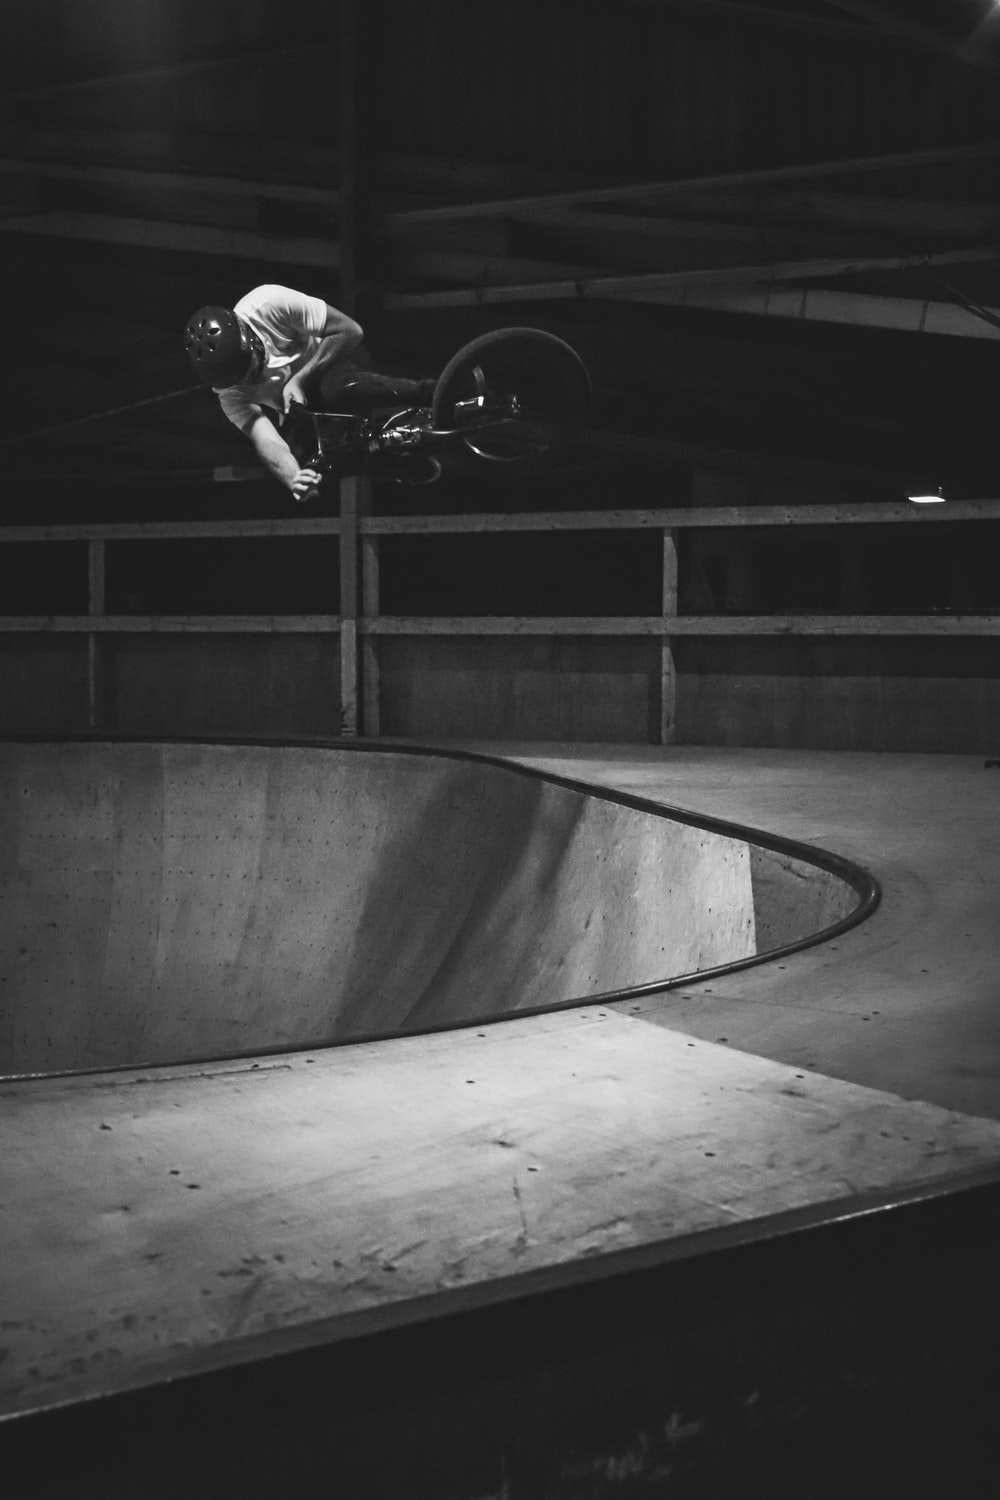 grayscale photo of person riding BMX bike